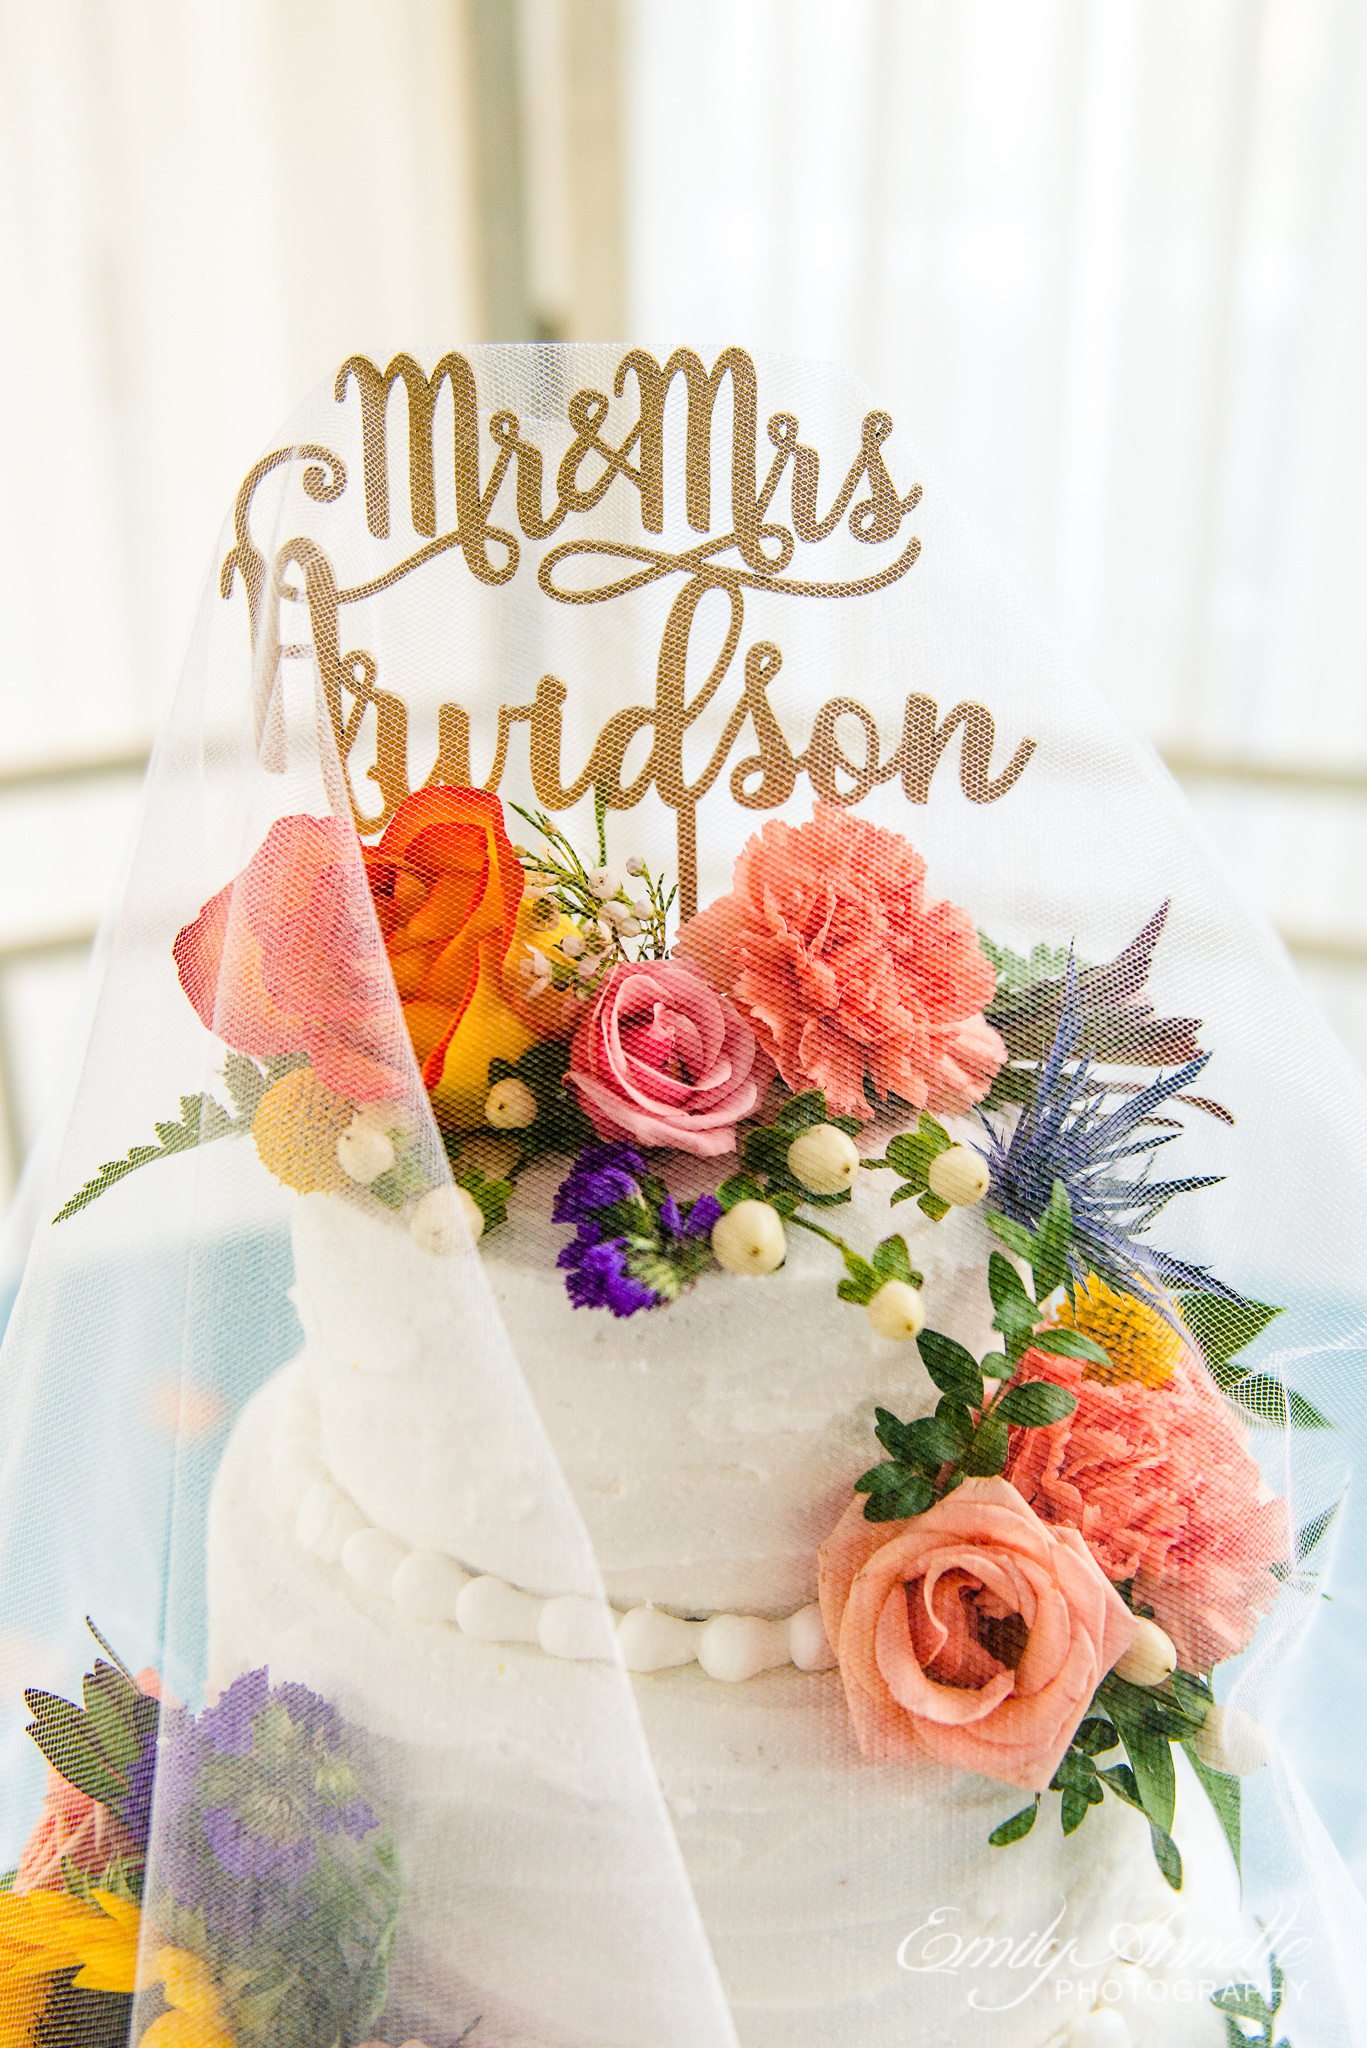 A classic buttercream wedding cake decorated with fall flowers, a personalized topper, and a white veil for a country wedding reception at Amber Grove near Richmond, Virginia